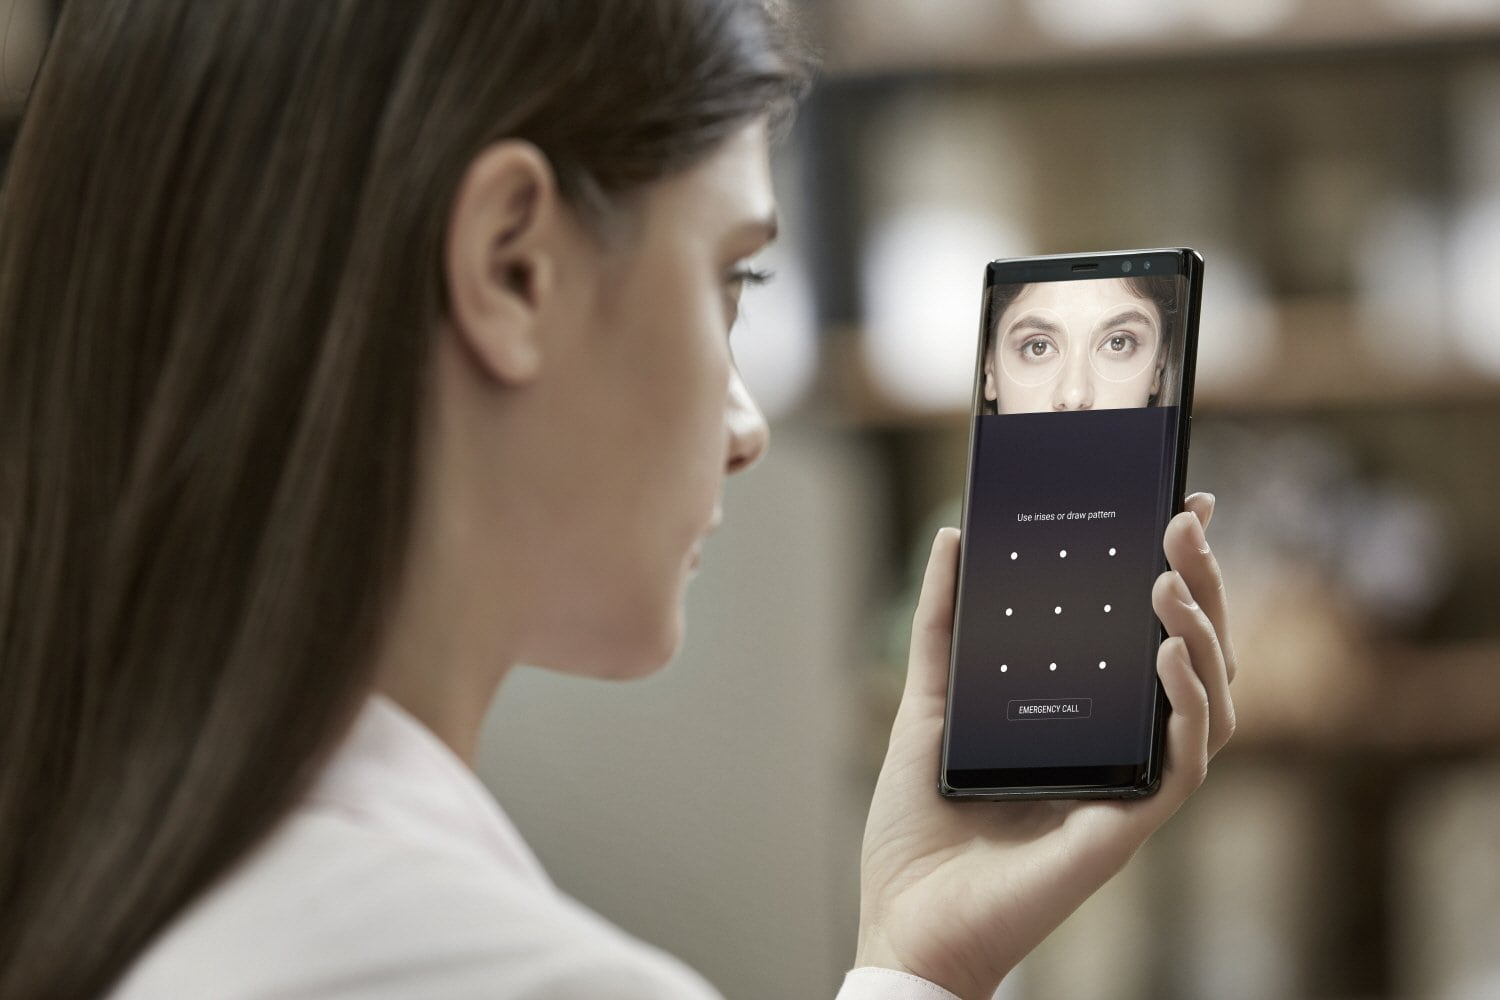 How To Set Up Iris Scanning On Galaxy Note 8